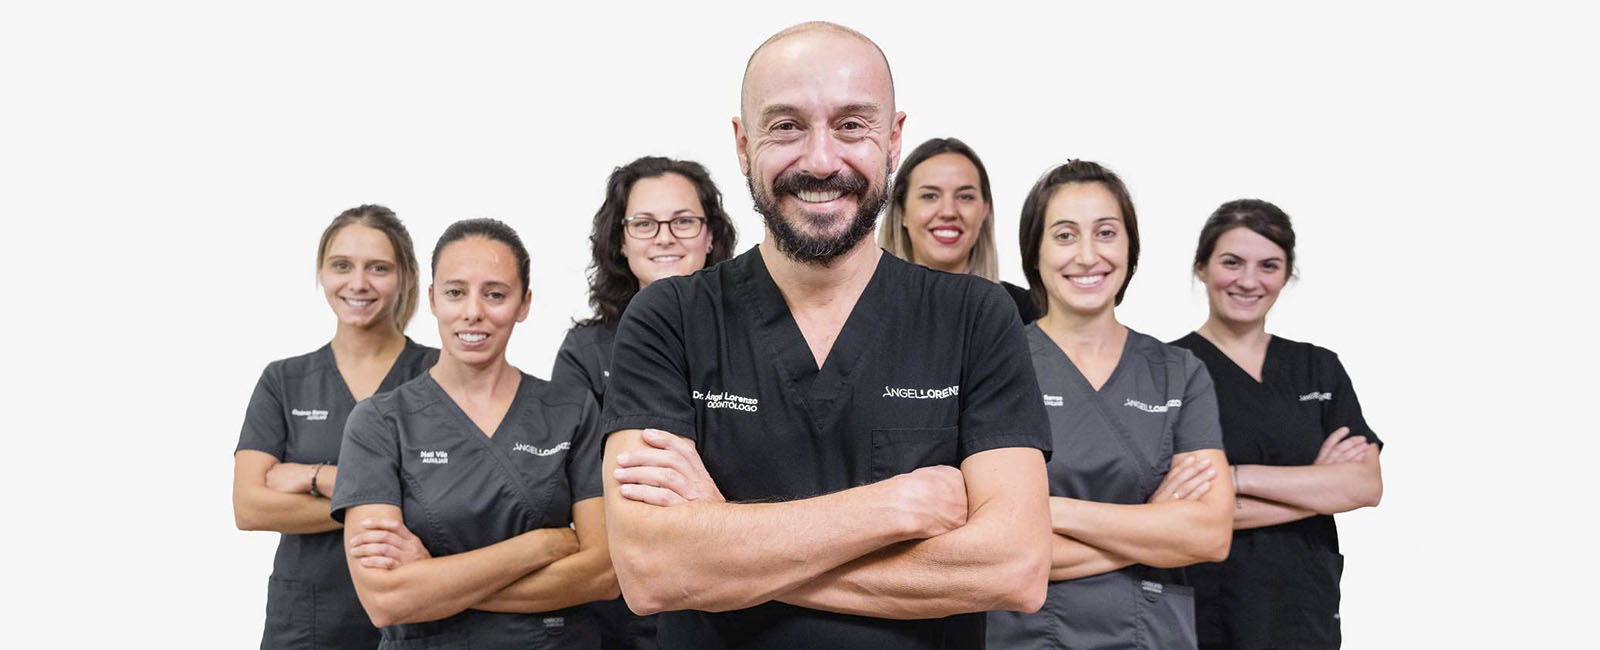 clinica dental angel lorenzo_equipo2_feliz 2020